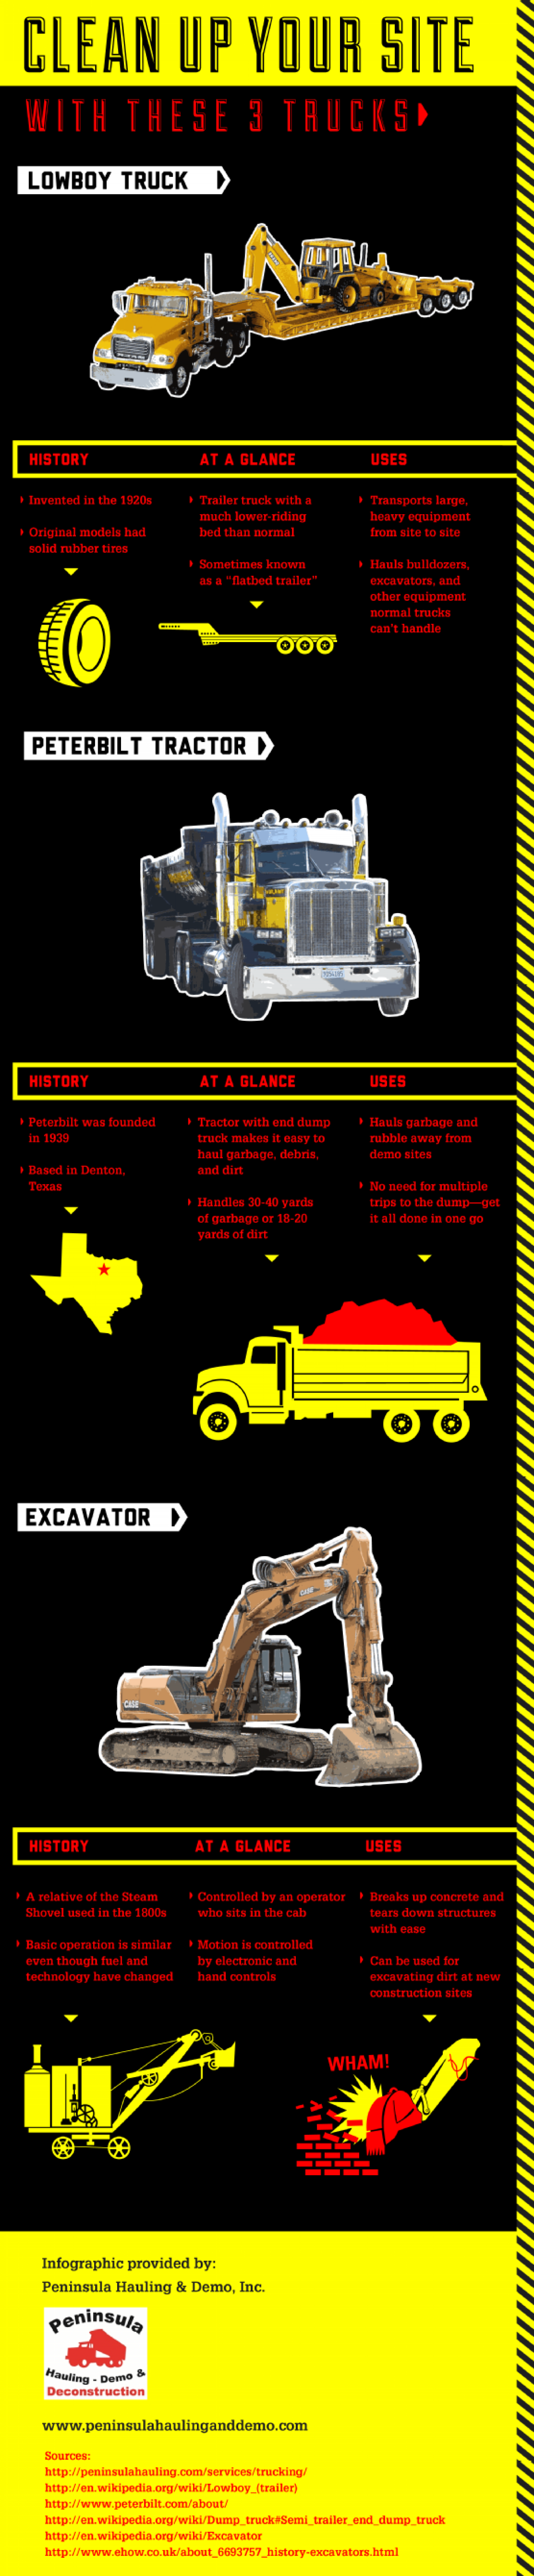 Clean Up Your Site with These 3 Trucks Infographic